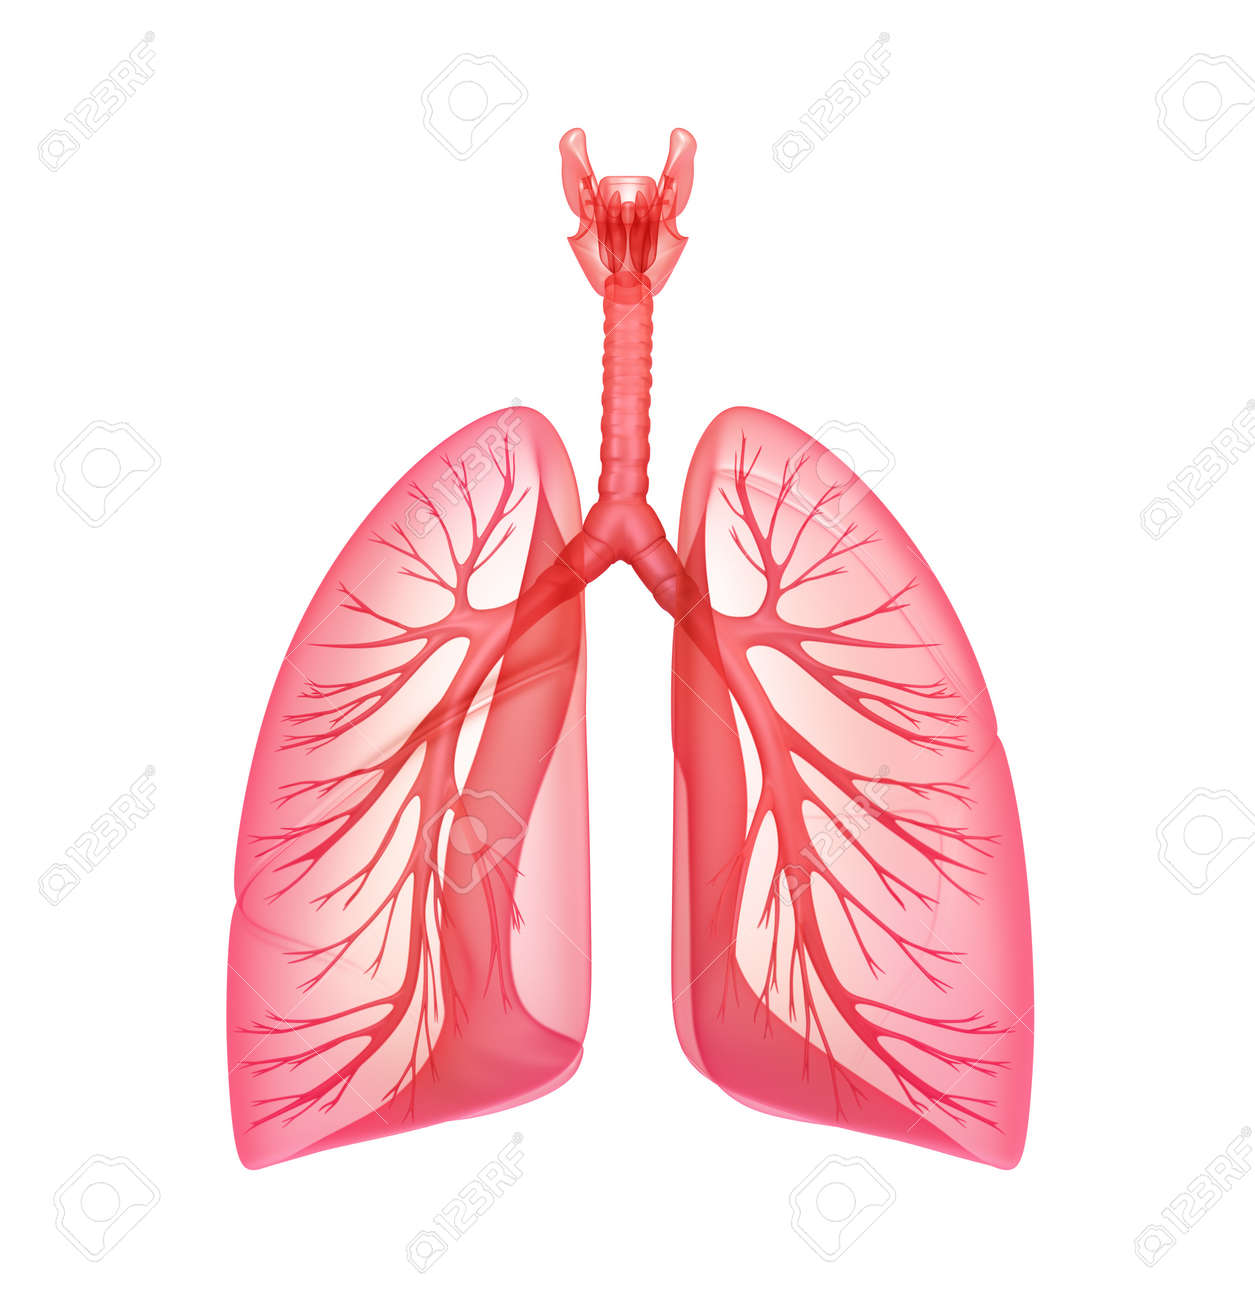 9,627 Lung Stock Illustrations, Cliparts And Royalty Free Lung Vectors